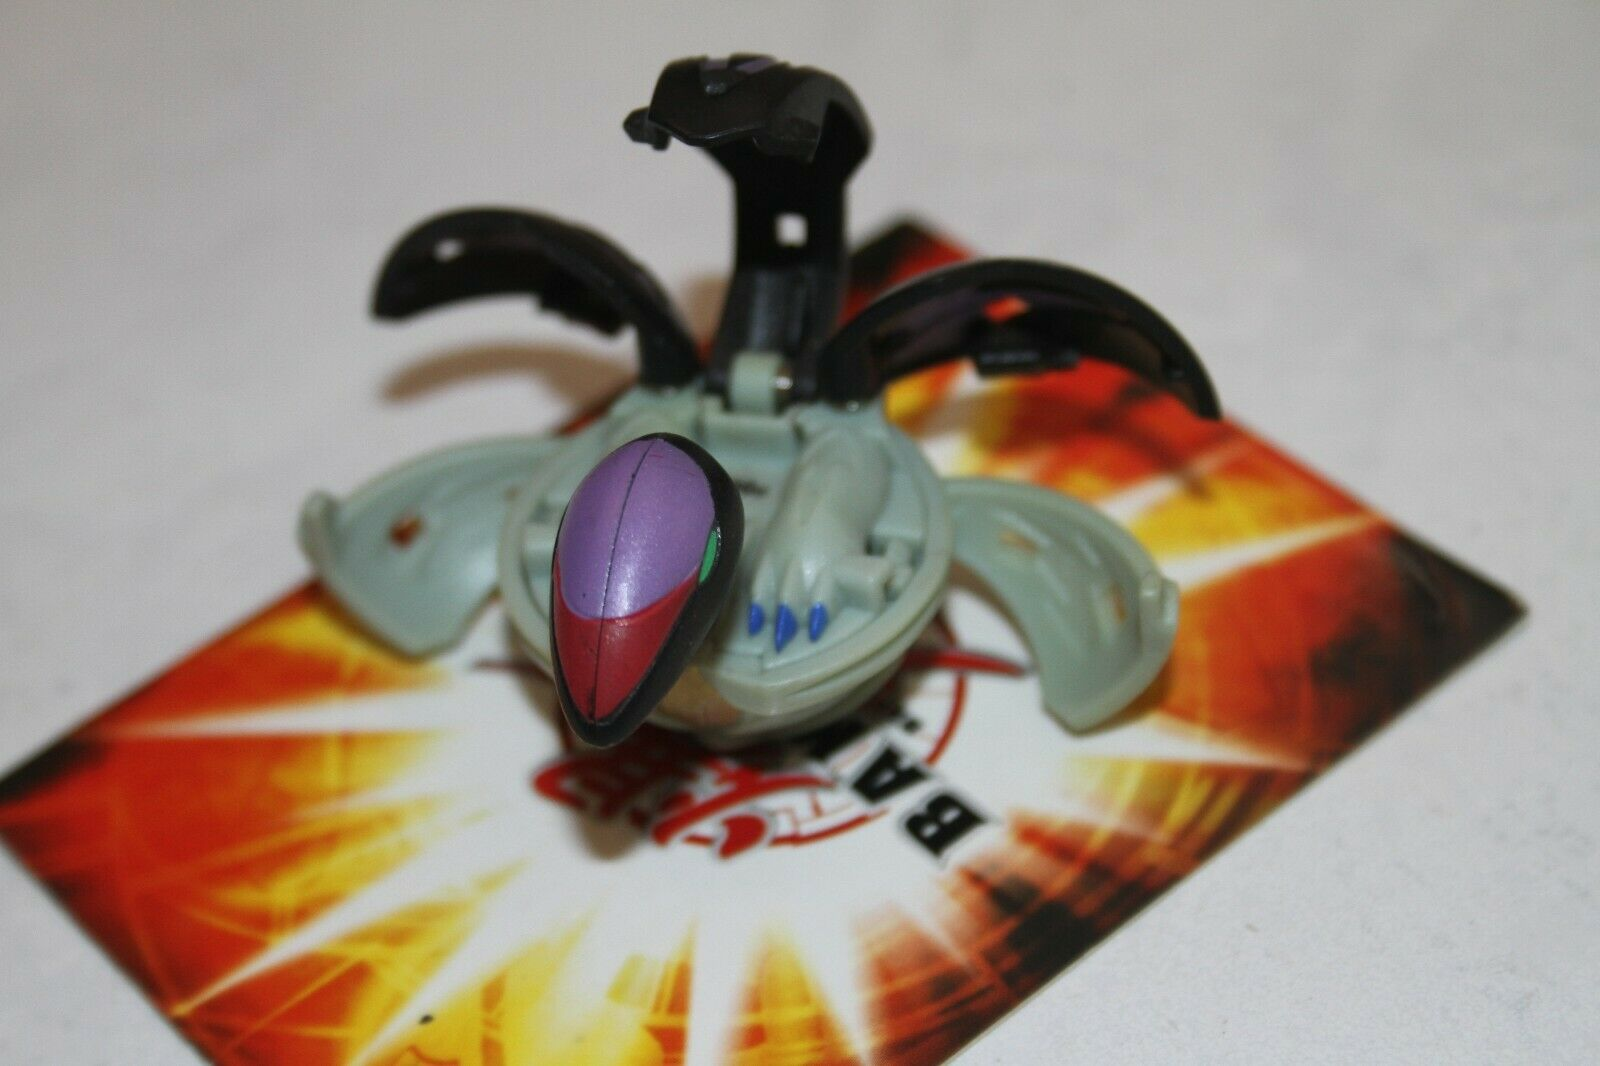 Some are RARE Very Low Price Bakugan Subterra Oberus Toys for Kids